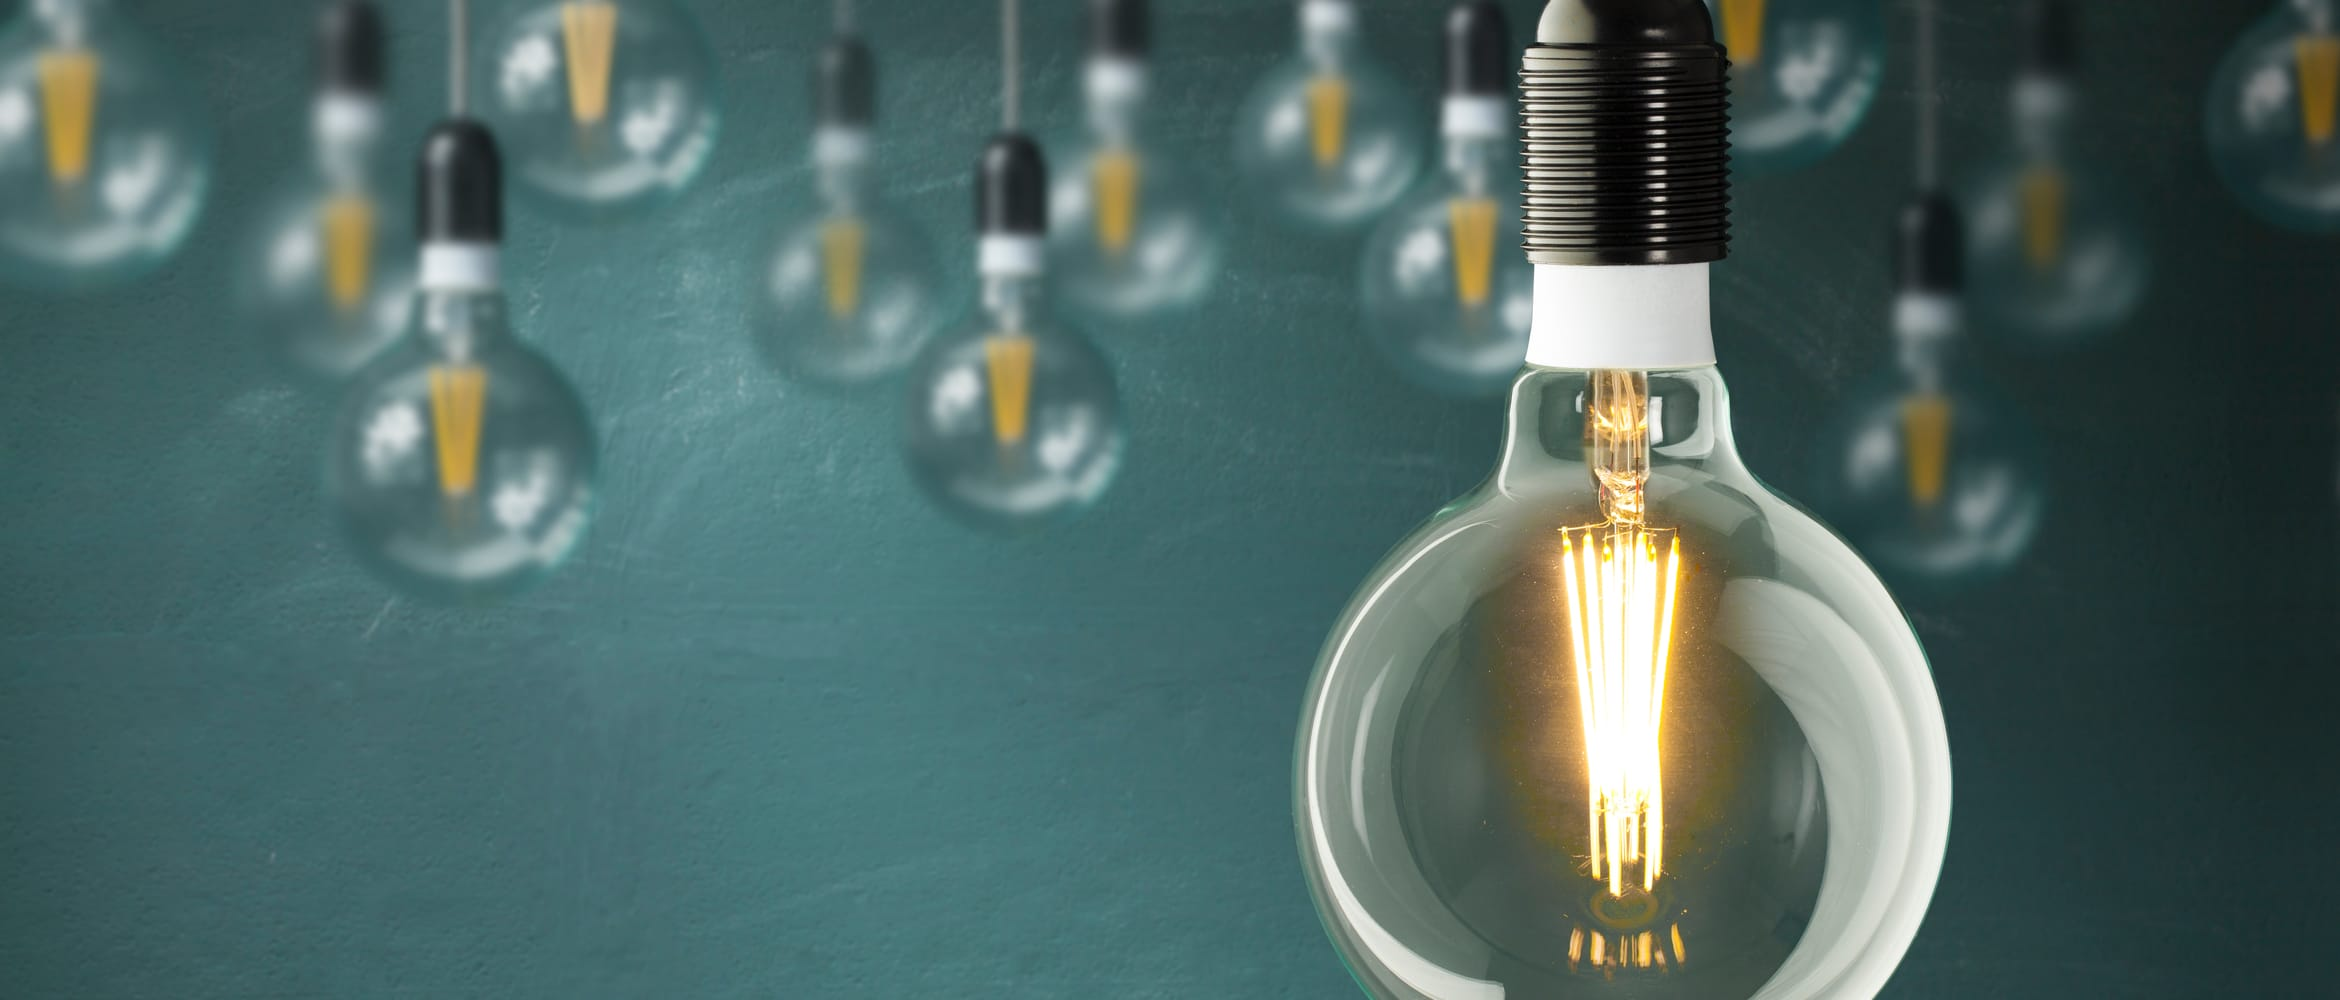 close up of a glowing light bulb to signify good business ideas